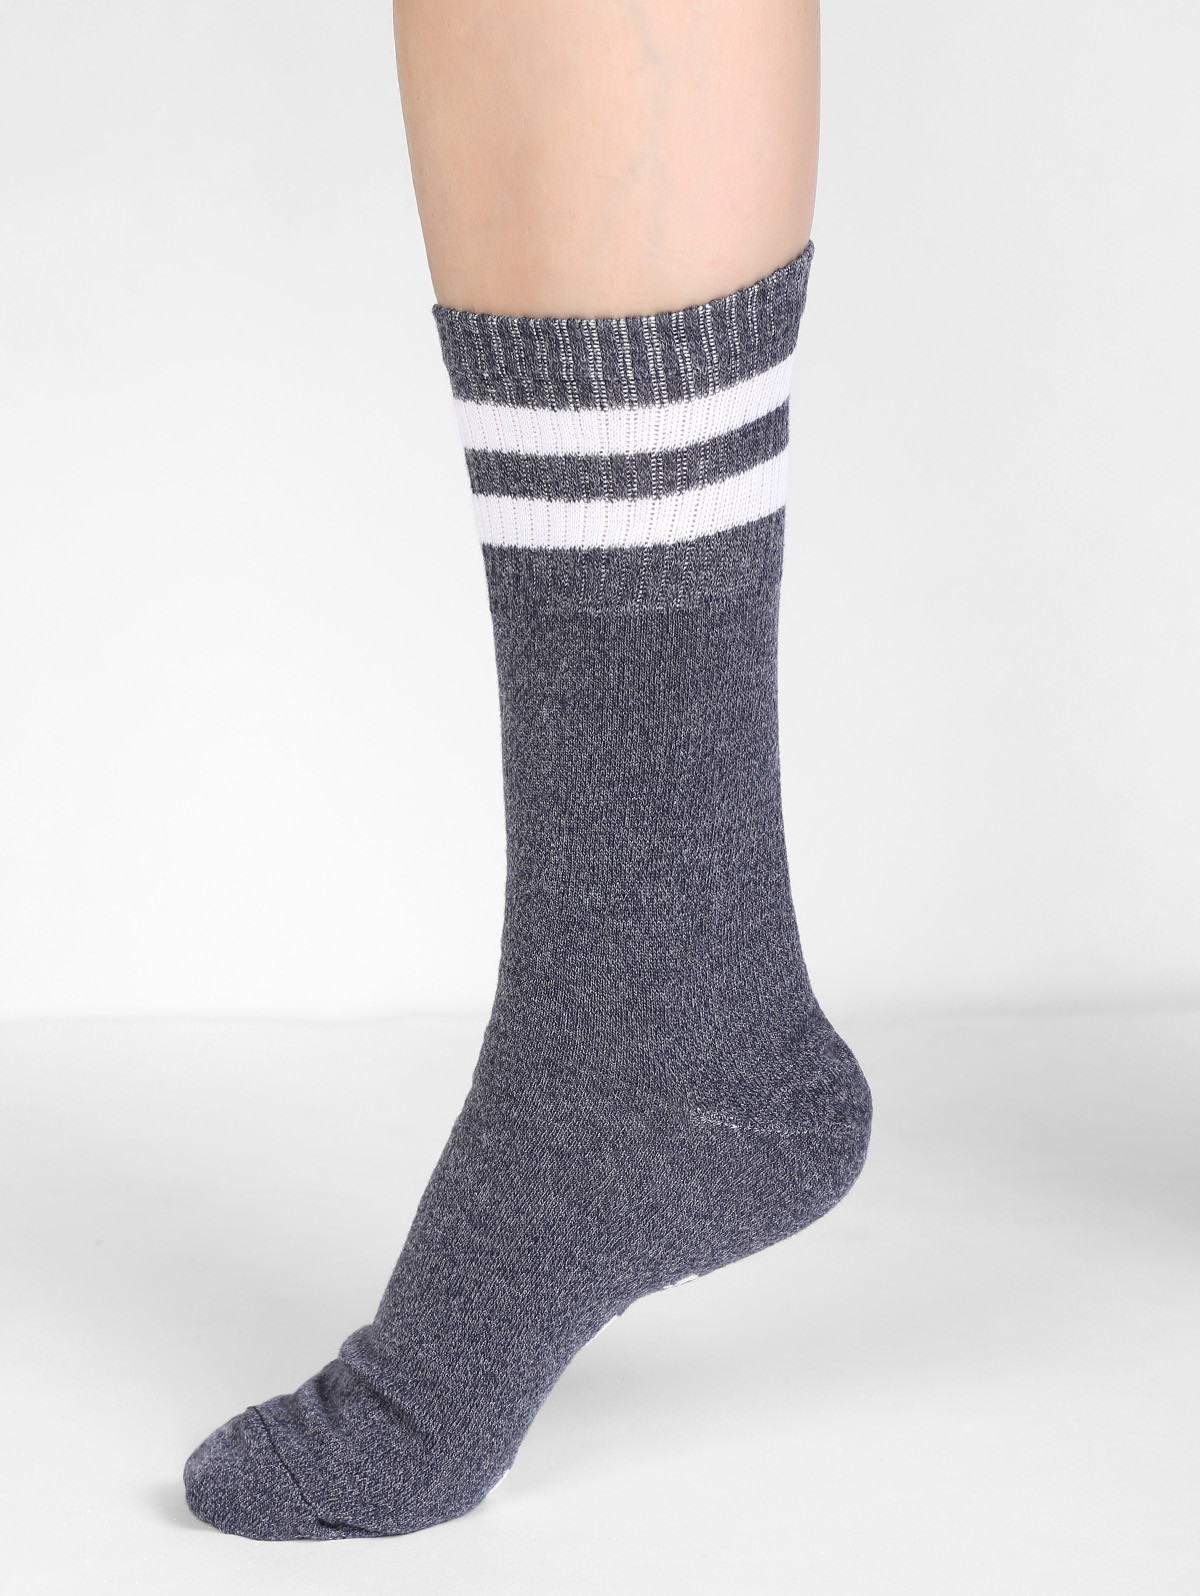 Fun Printing Letter Crew Socks CLOUDY GRAY